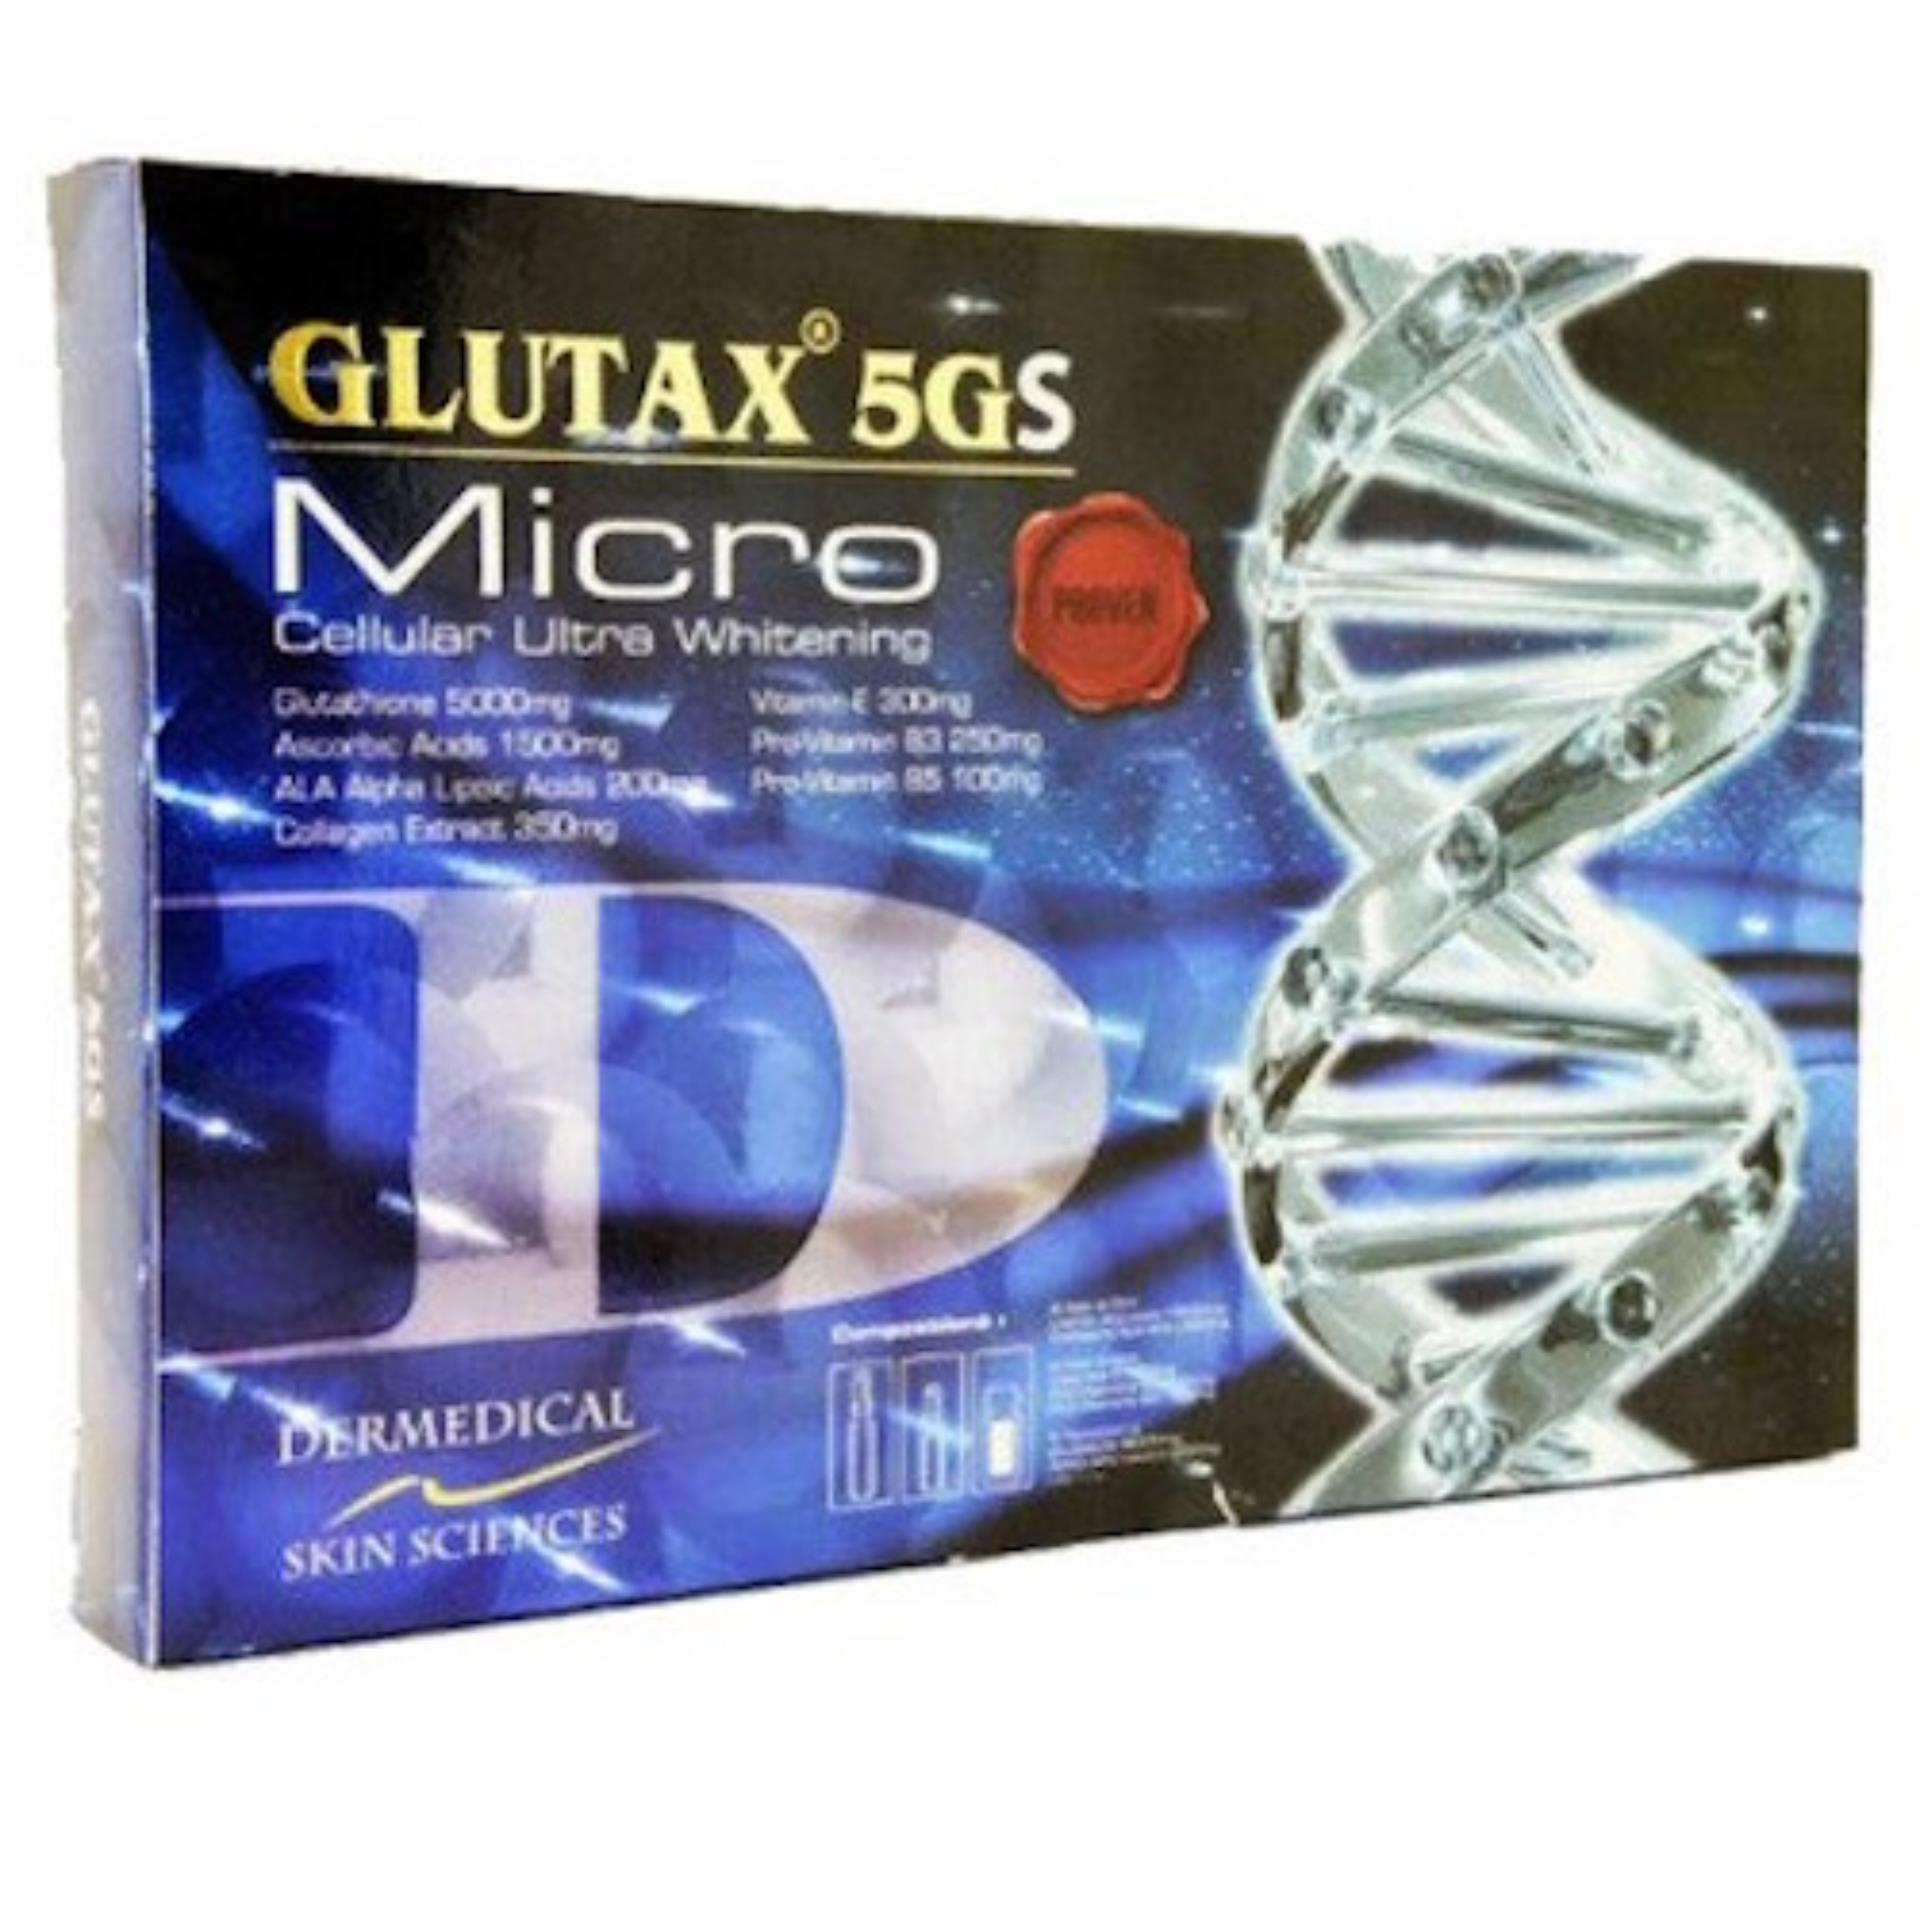 Model Glutax 5Gs Micro Cellular Ultra Whitening 1 Pack Terbaru